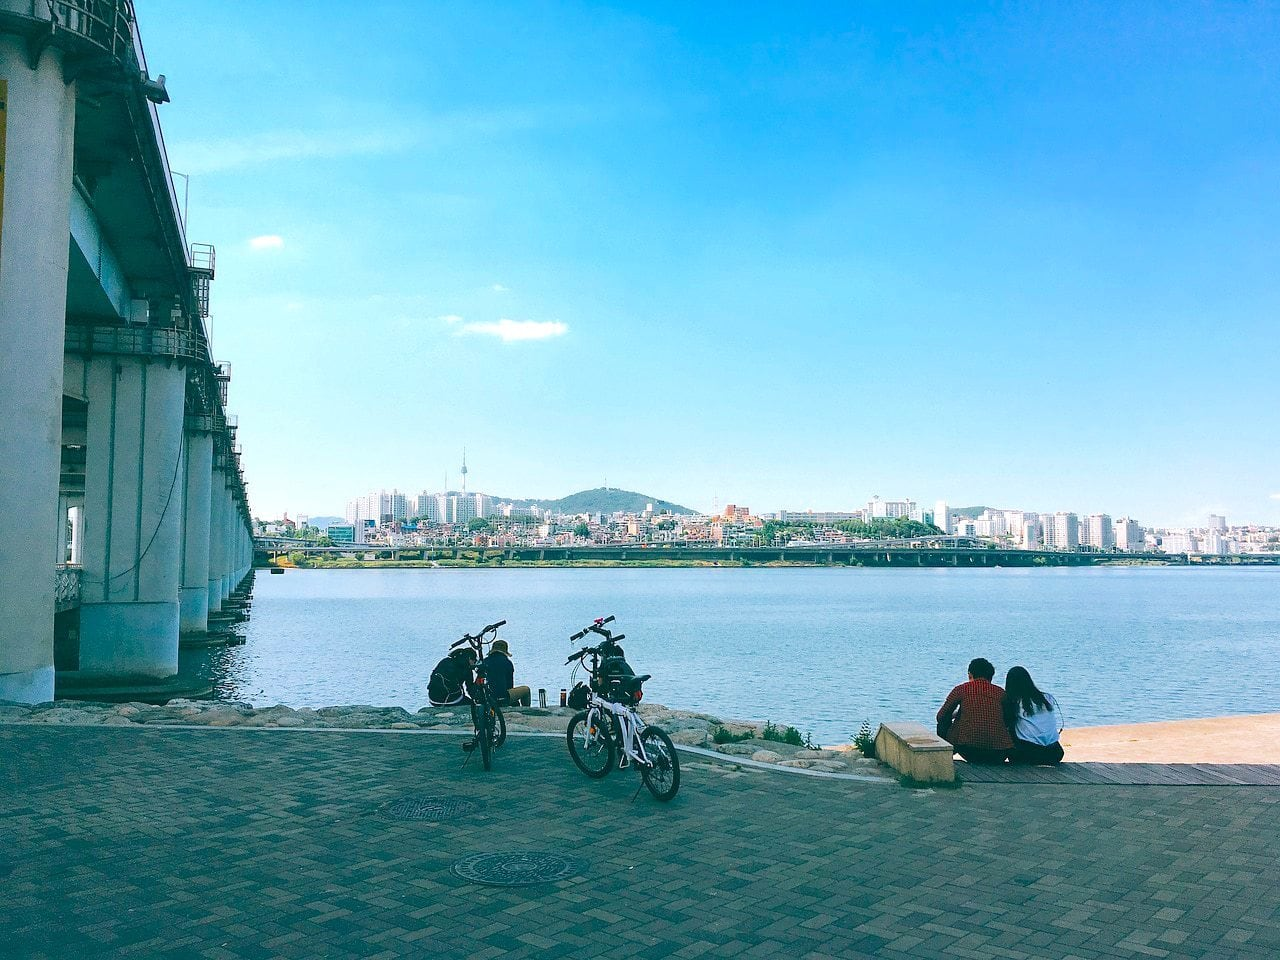 Lovers sharing a moment along the Han River